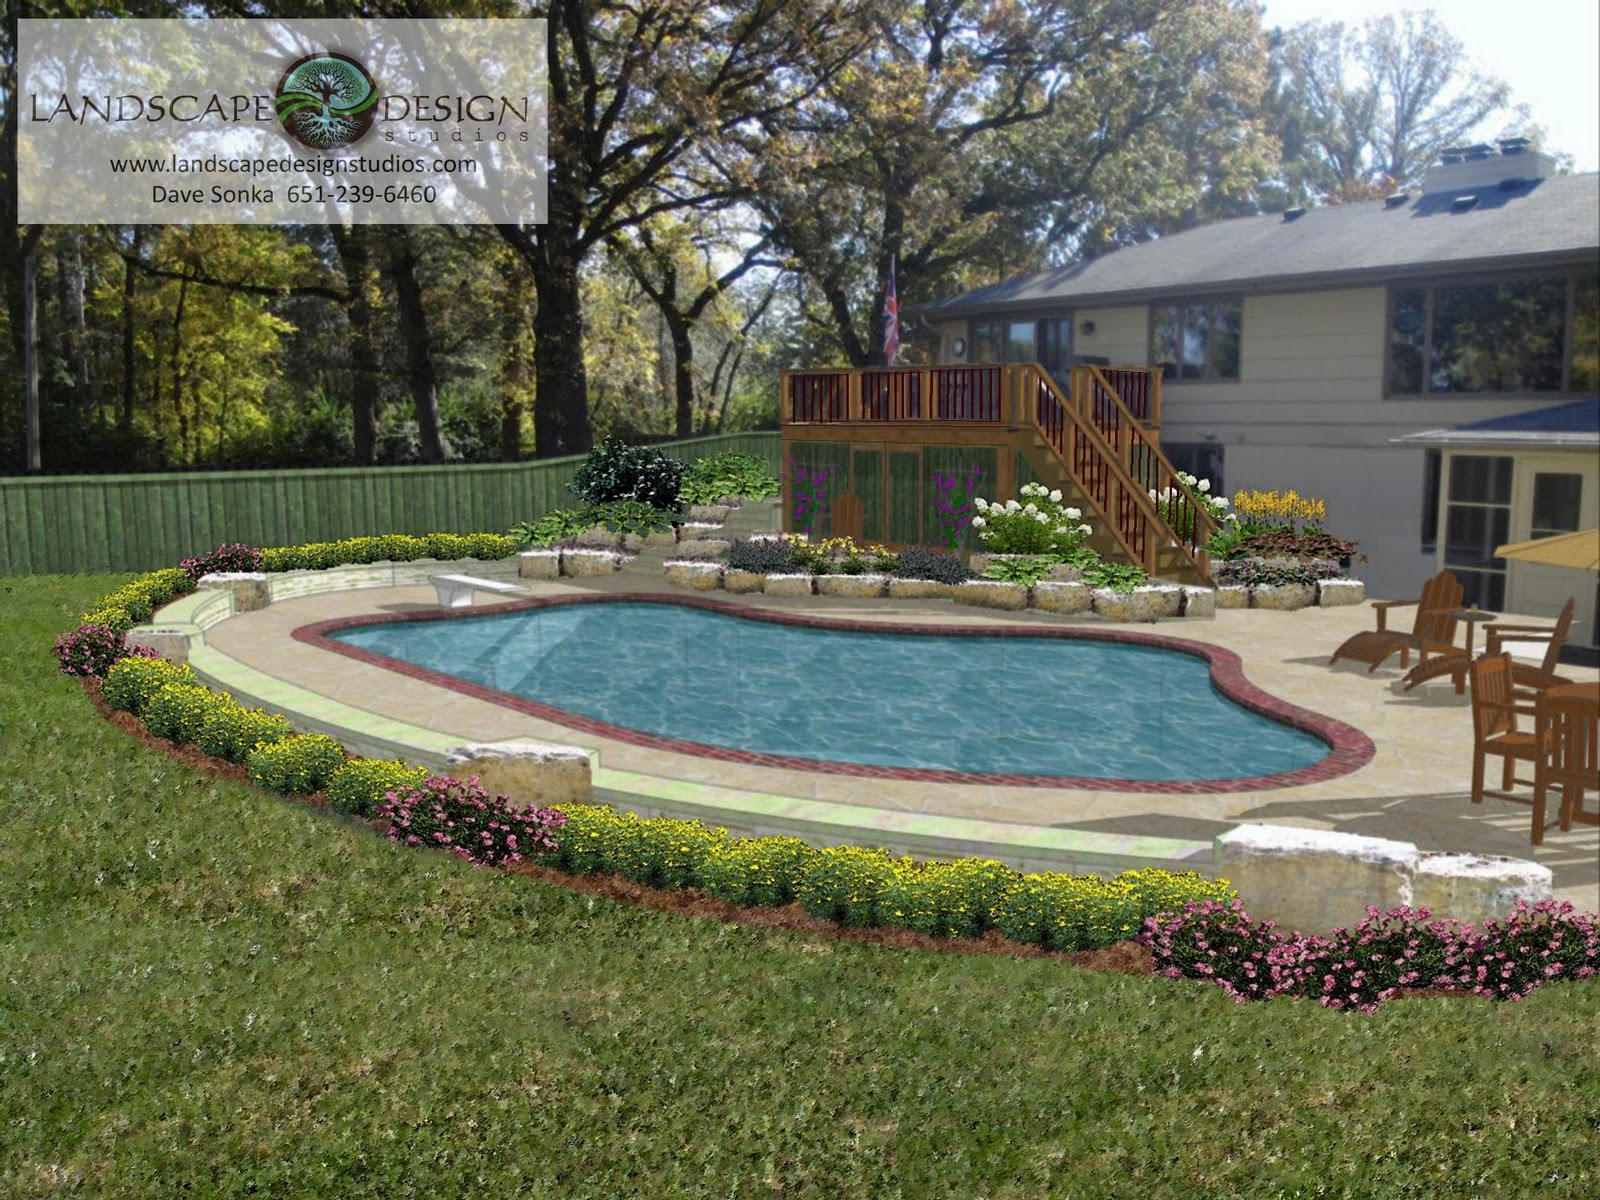 Landscaping area landscaping ideas around spa pools for Garden designs around pools